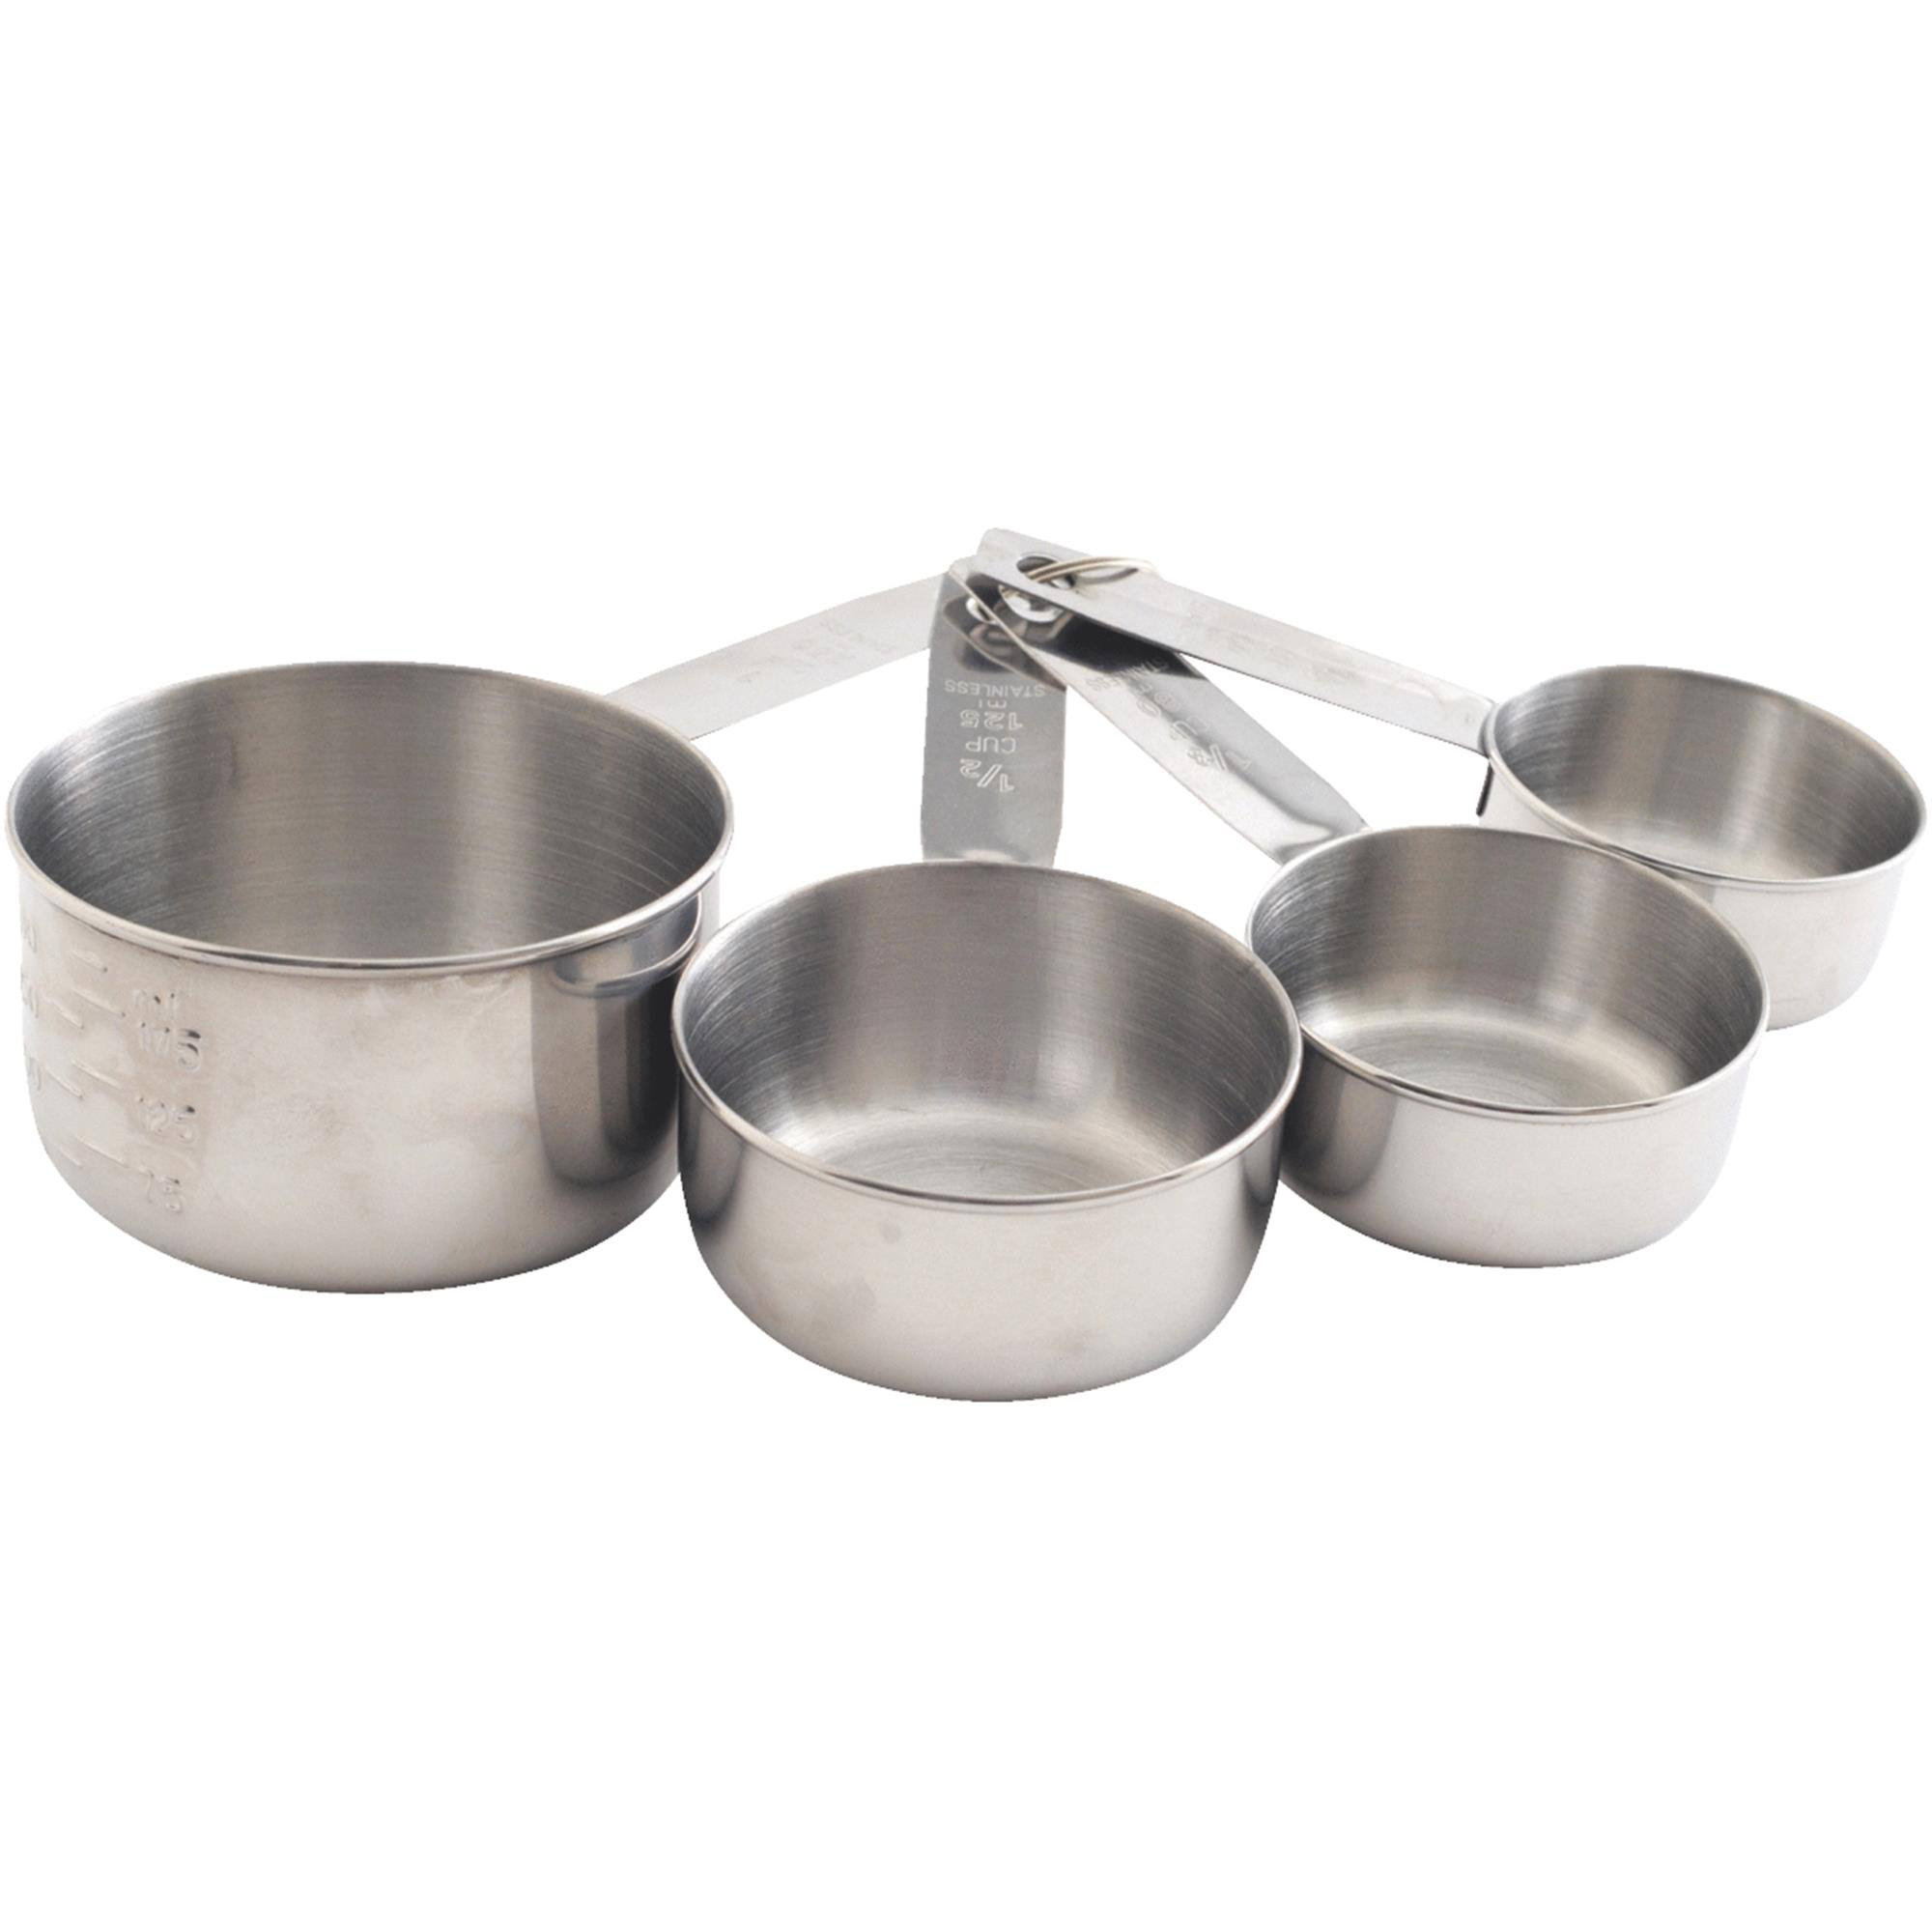 Norpro Measuring Cup Set - 4pcs, Stainless Steel